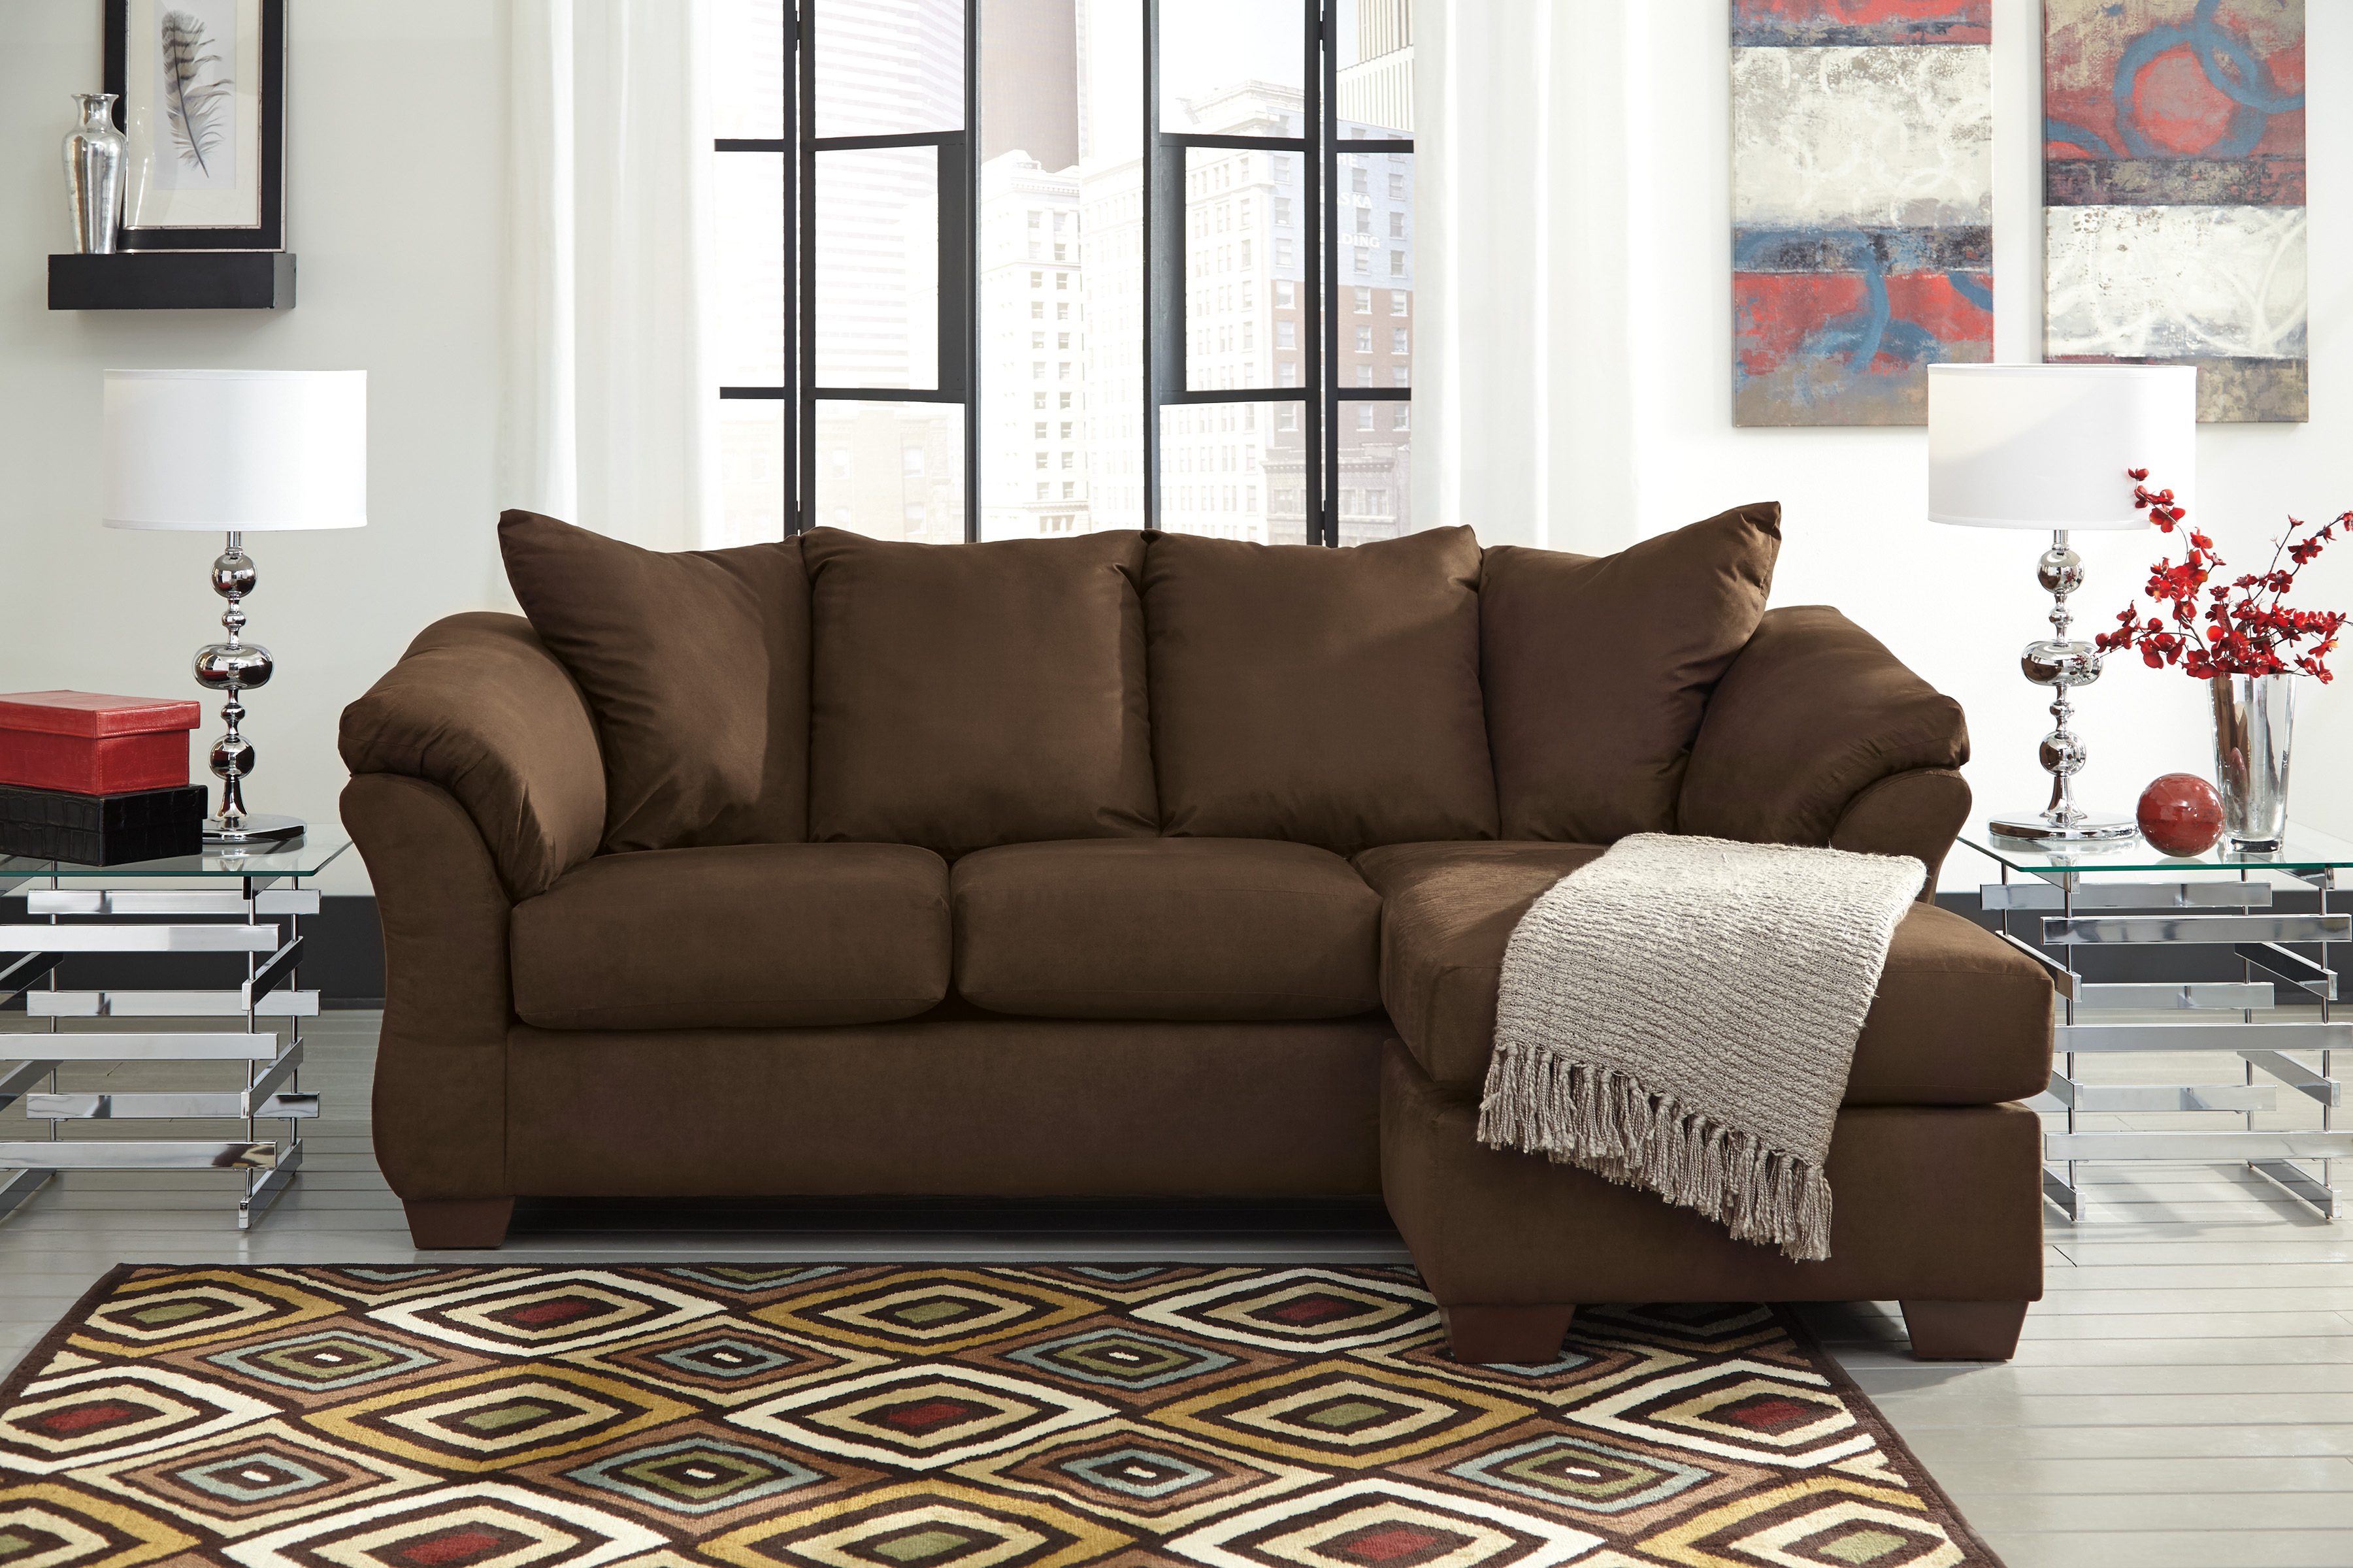 Marvelous Majik Darcy Caf Sofa Chaise And Loveseat Rent To Own Squirreltailoven Fun Painted Chair Ideas Images Squirreltailovenorg